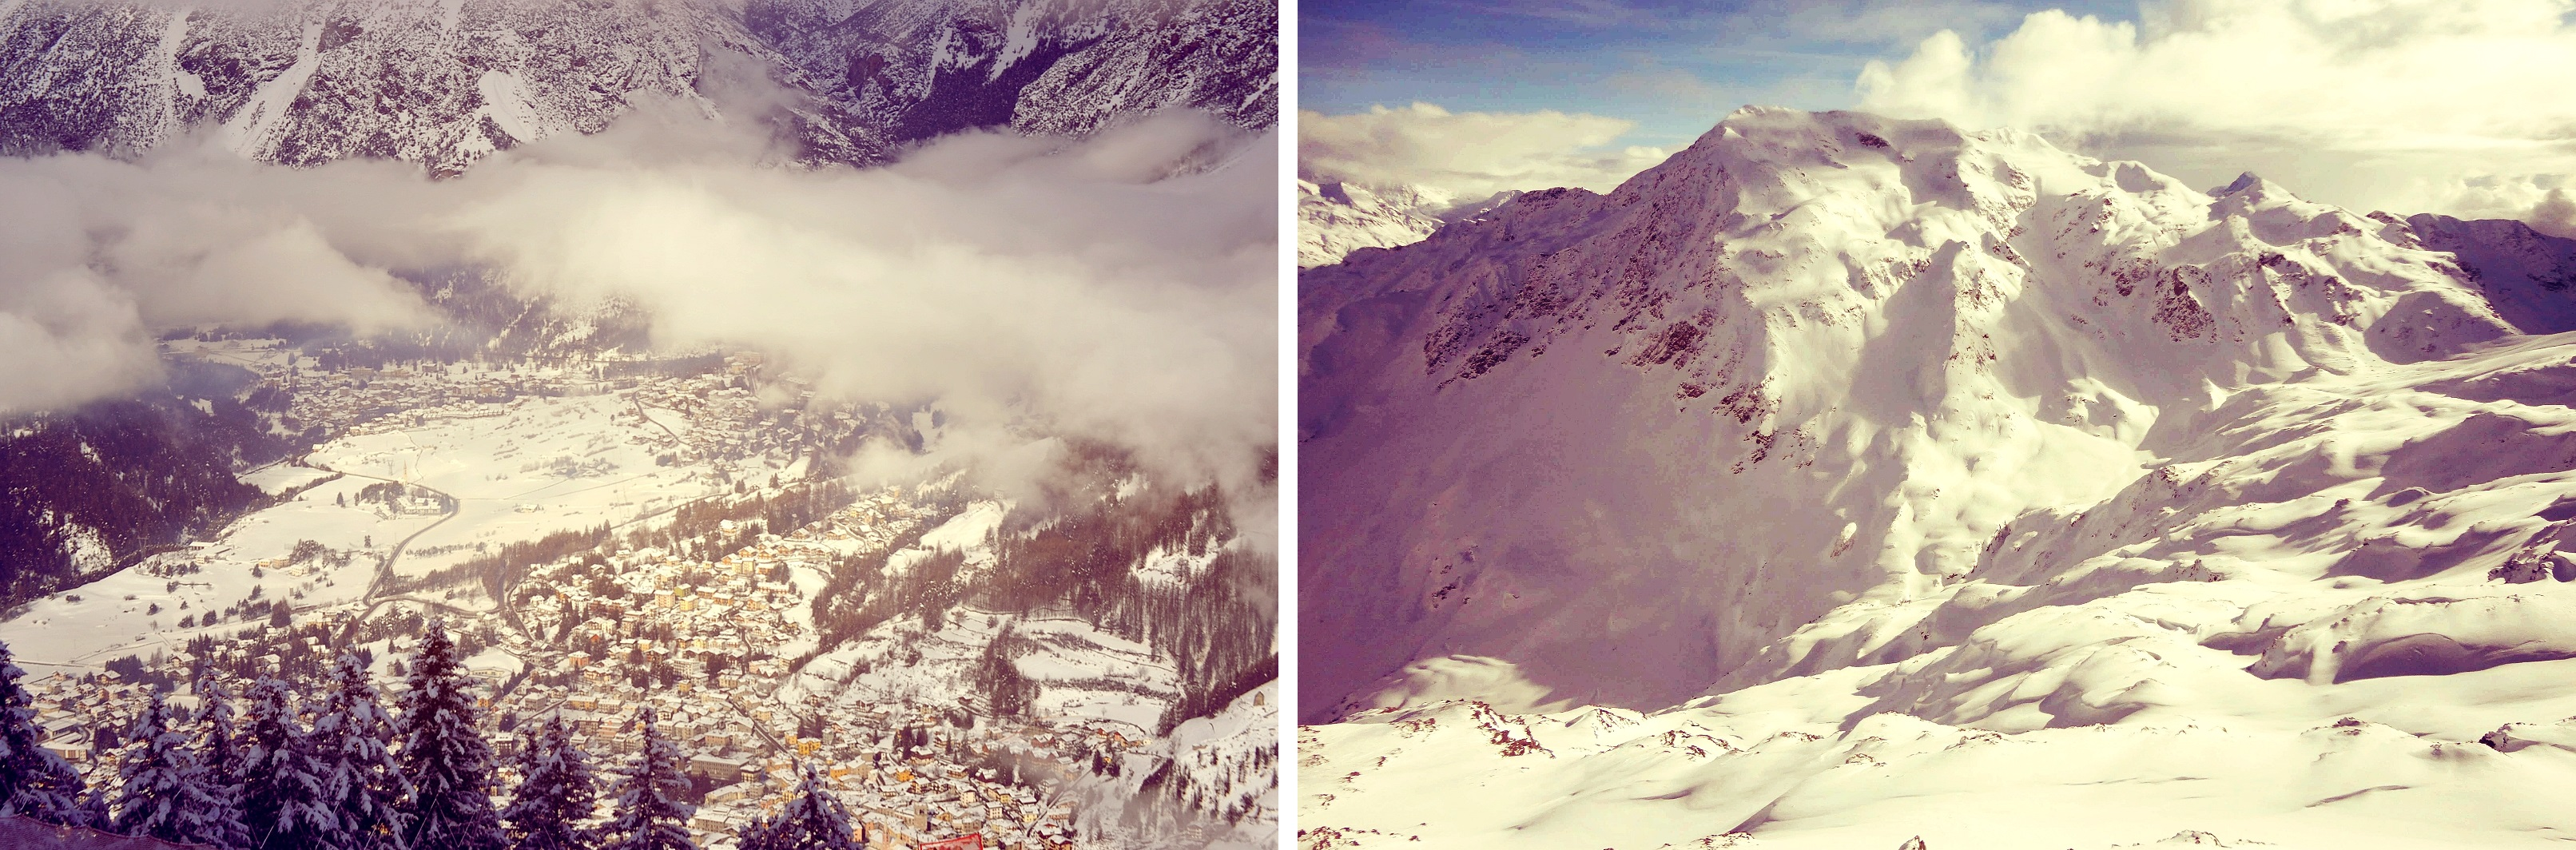 Weekend trip to Bormio... also my first time to mountains, whoathey'rebig